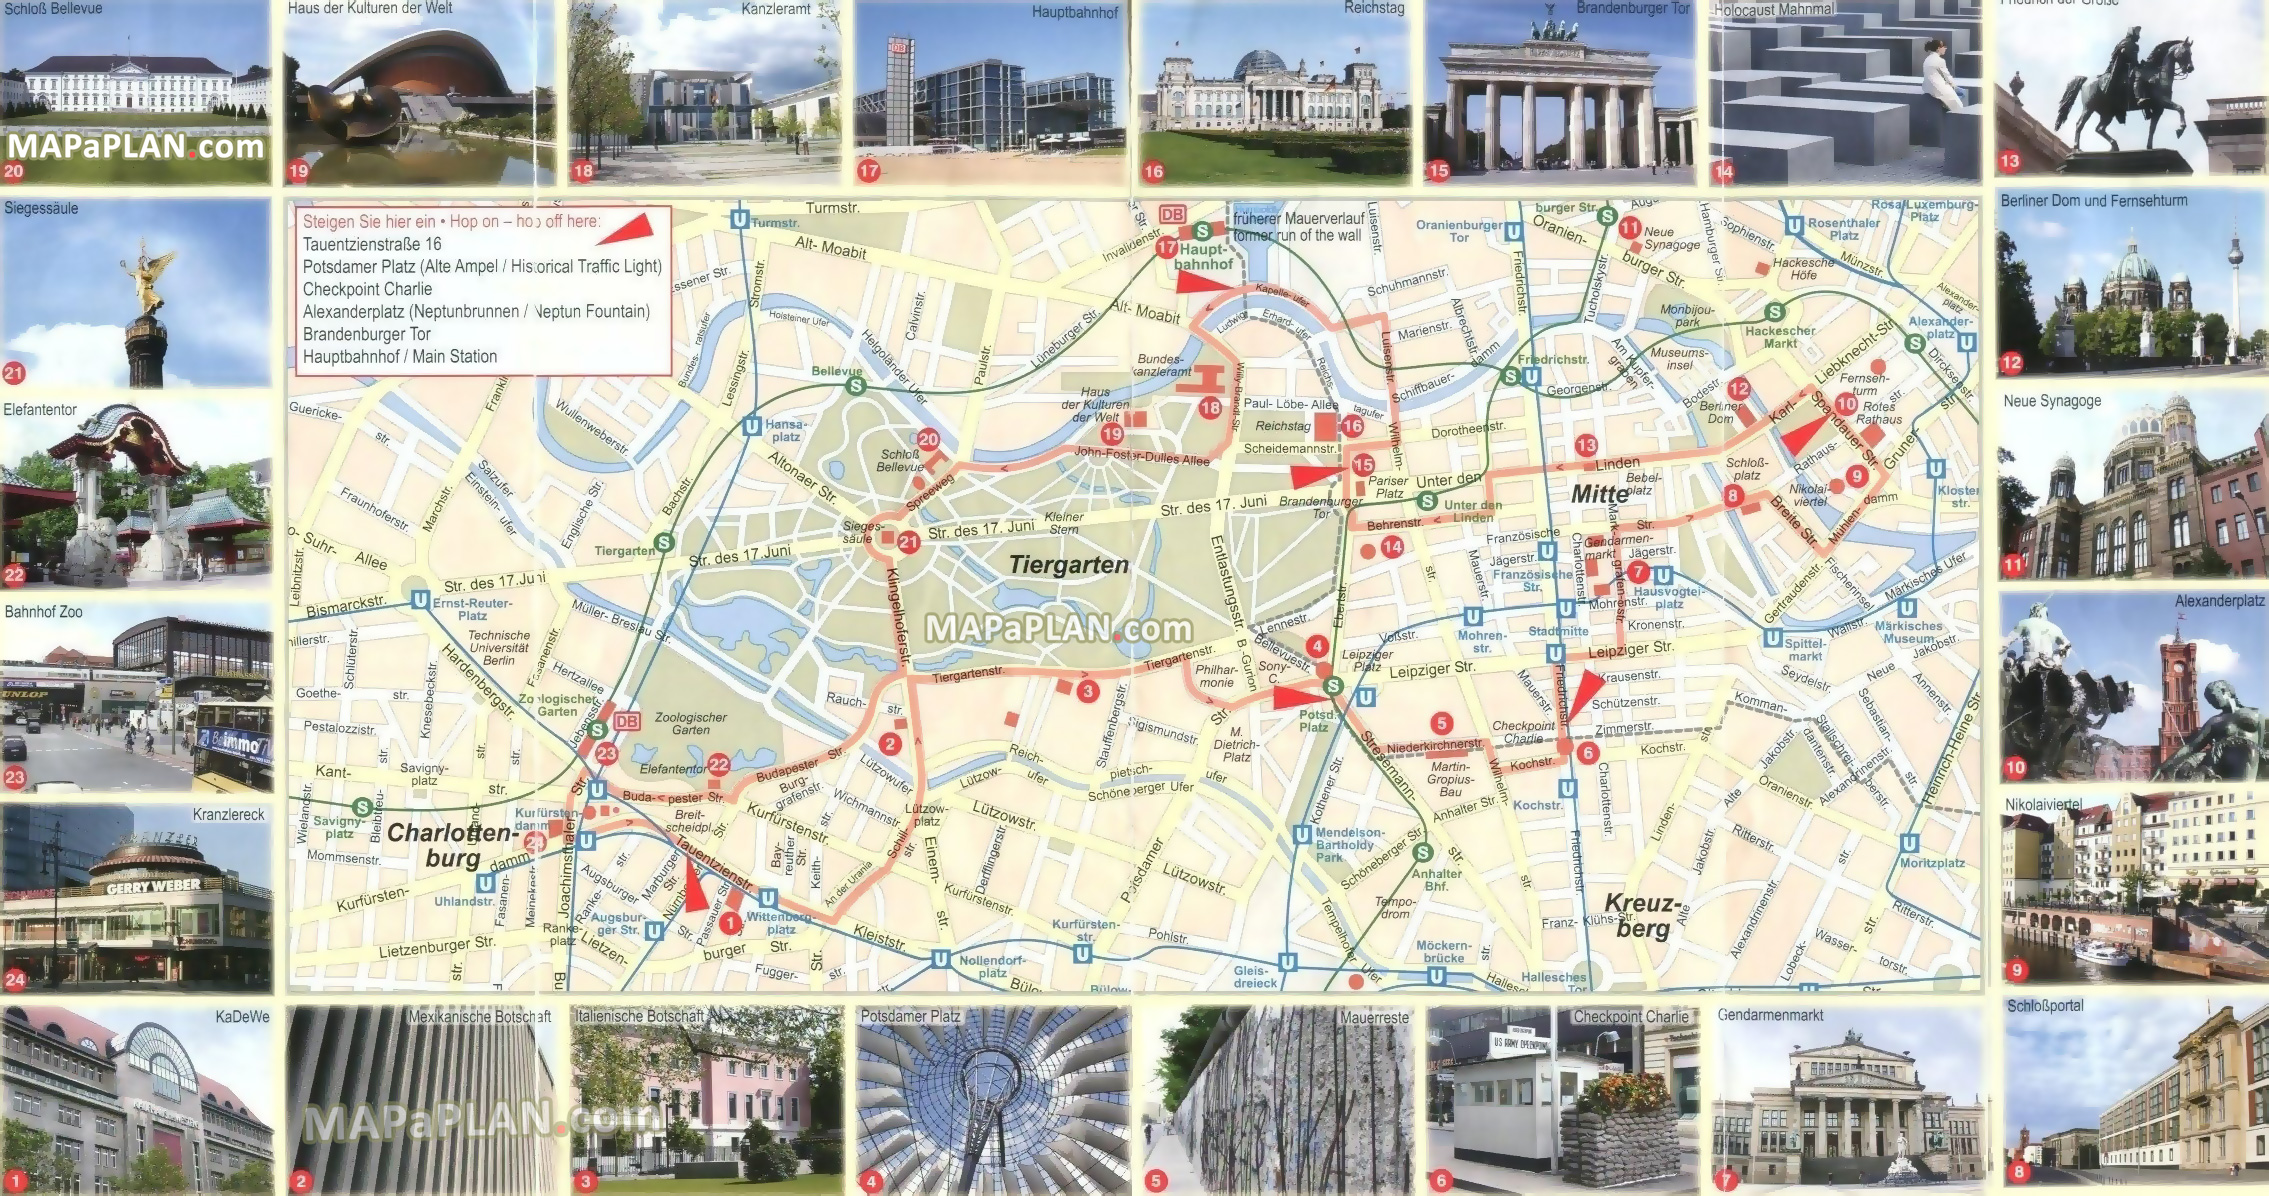 Berlin maps   Top tourist attractions   Free  printable city street map free virtual map 24 images famous travel hotspots historical buildings  brandenburg gate Berlin top tourist attractions